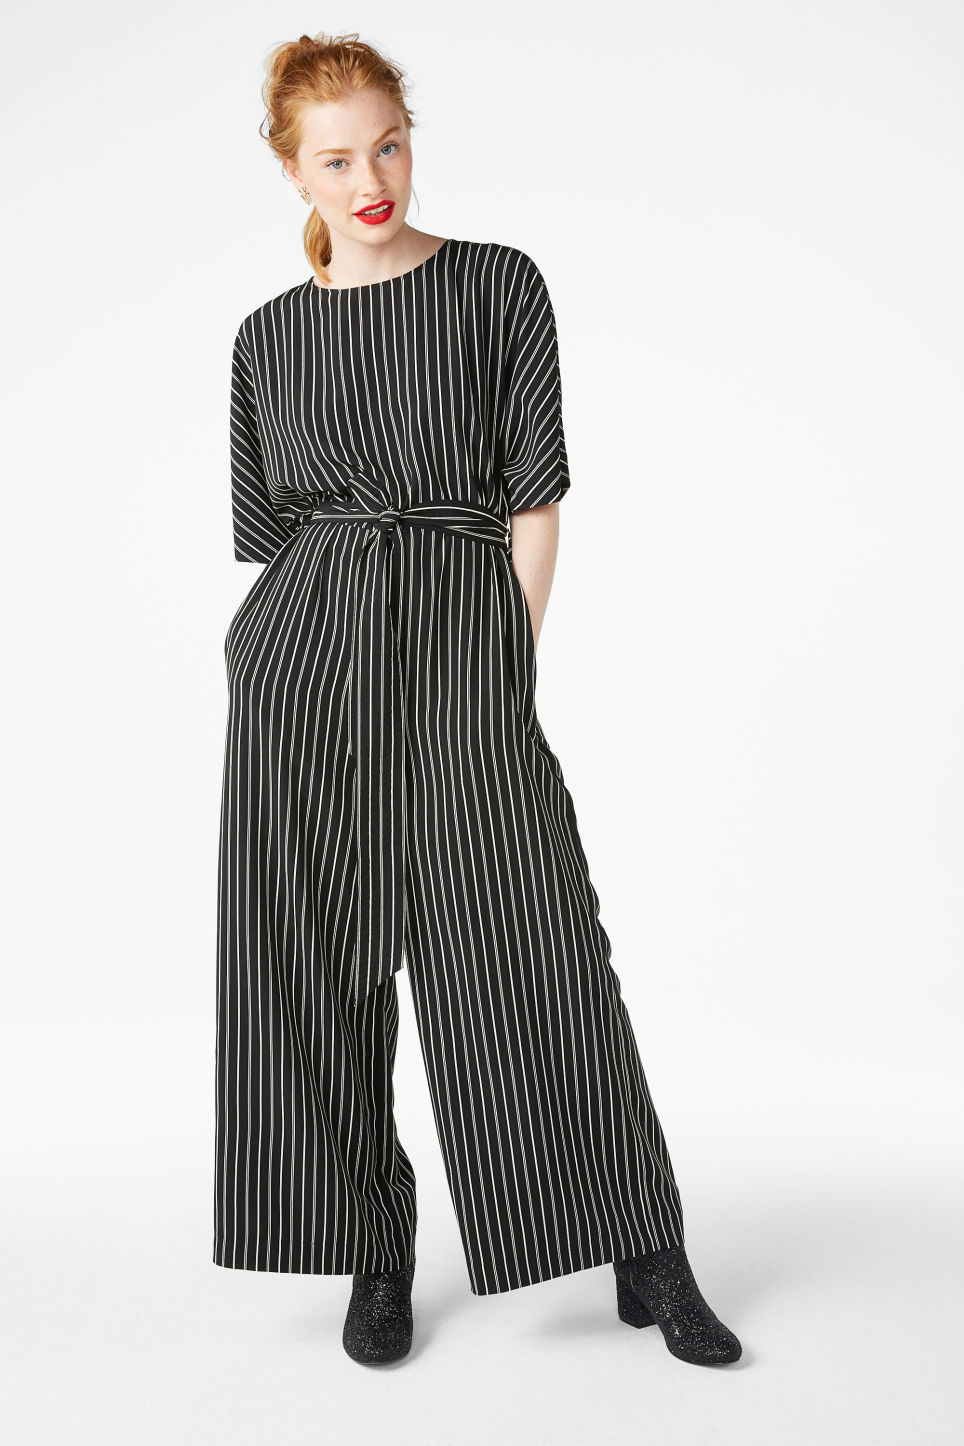 6add484159d5 Belted jumpsuit - Sleek stripes - Jumpsuits - Monki